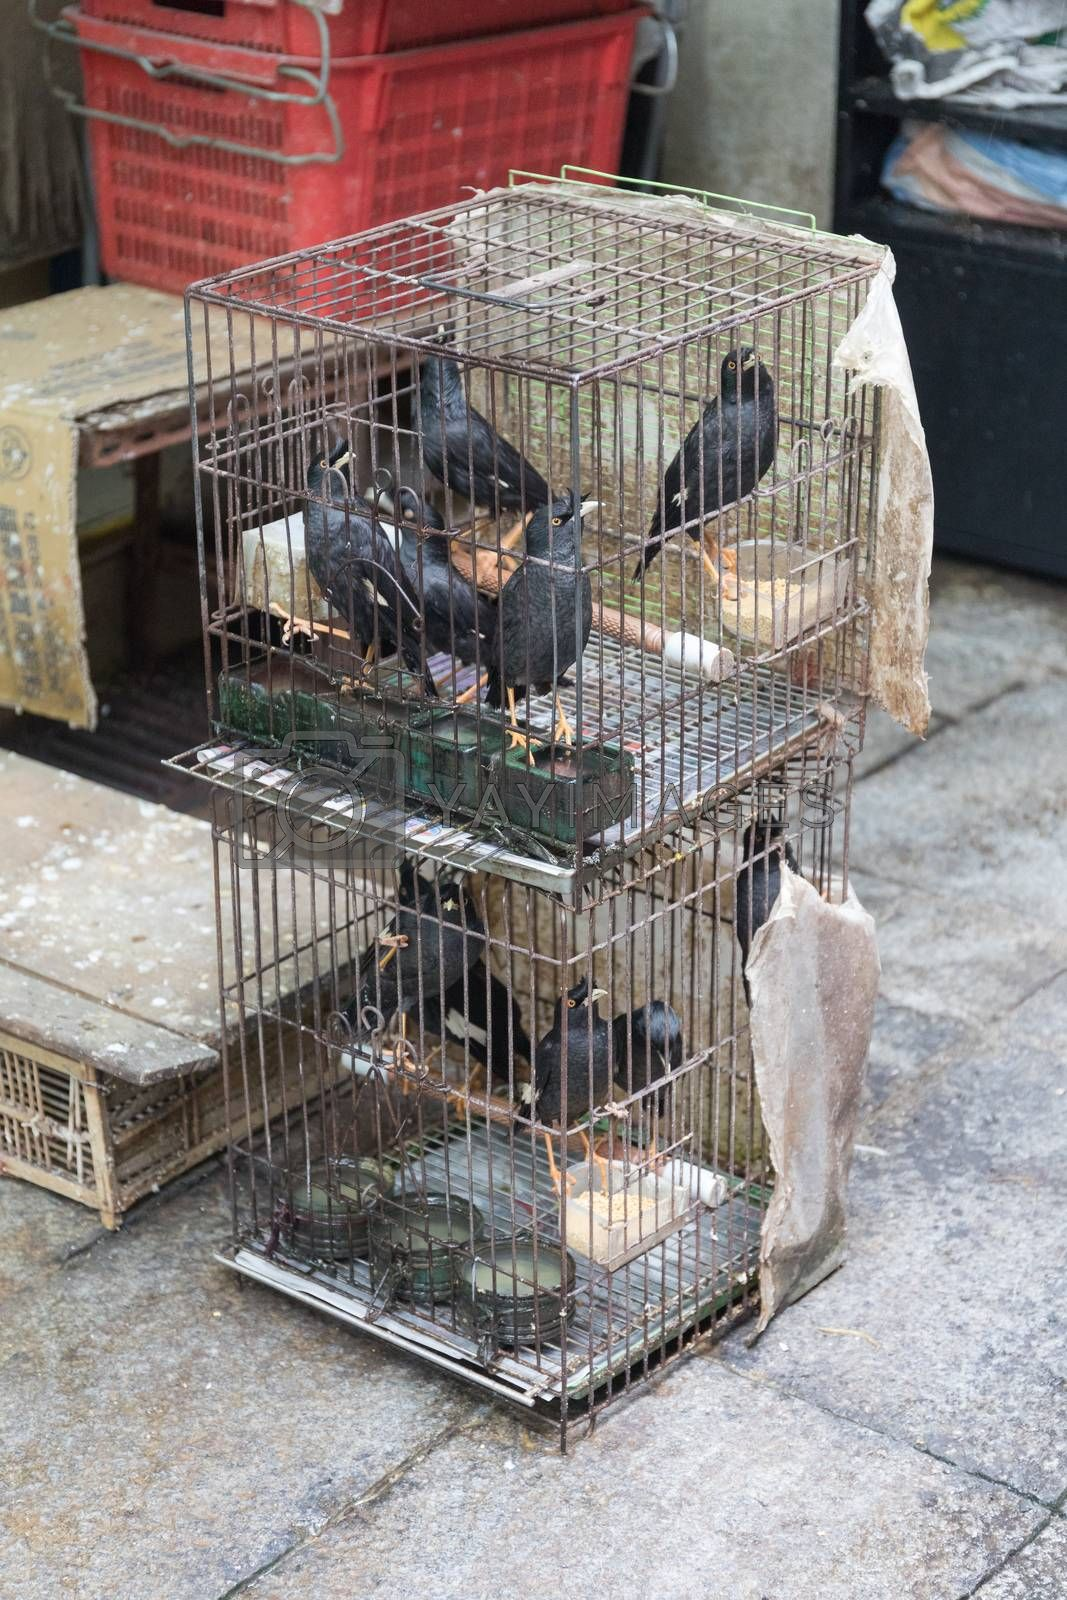 Ravens and Crows in Cages at Market